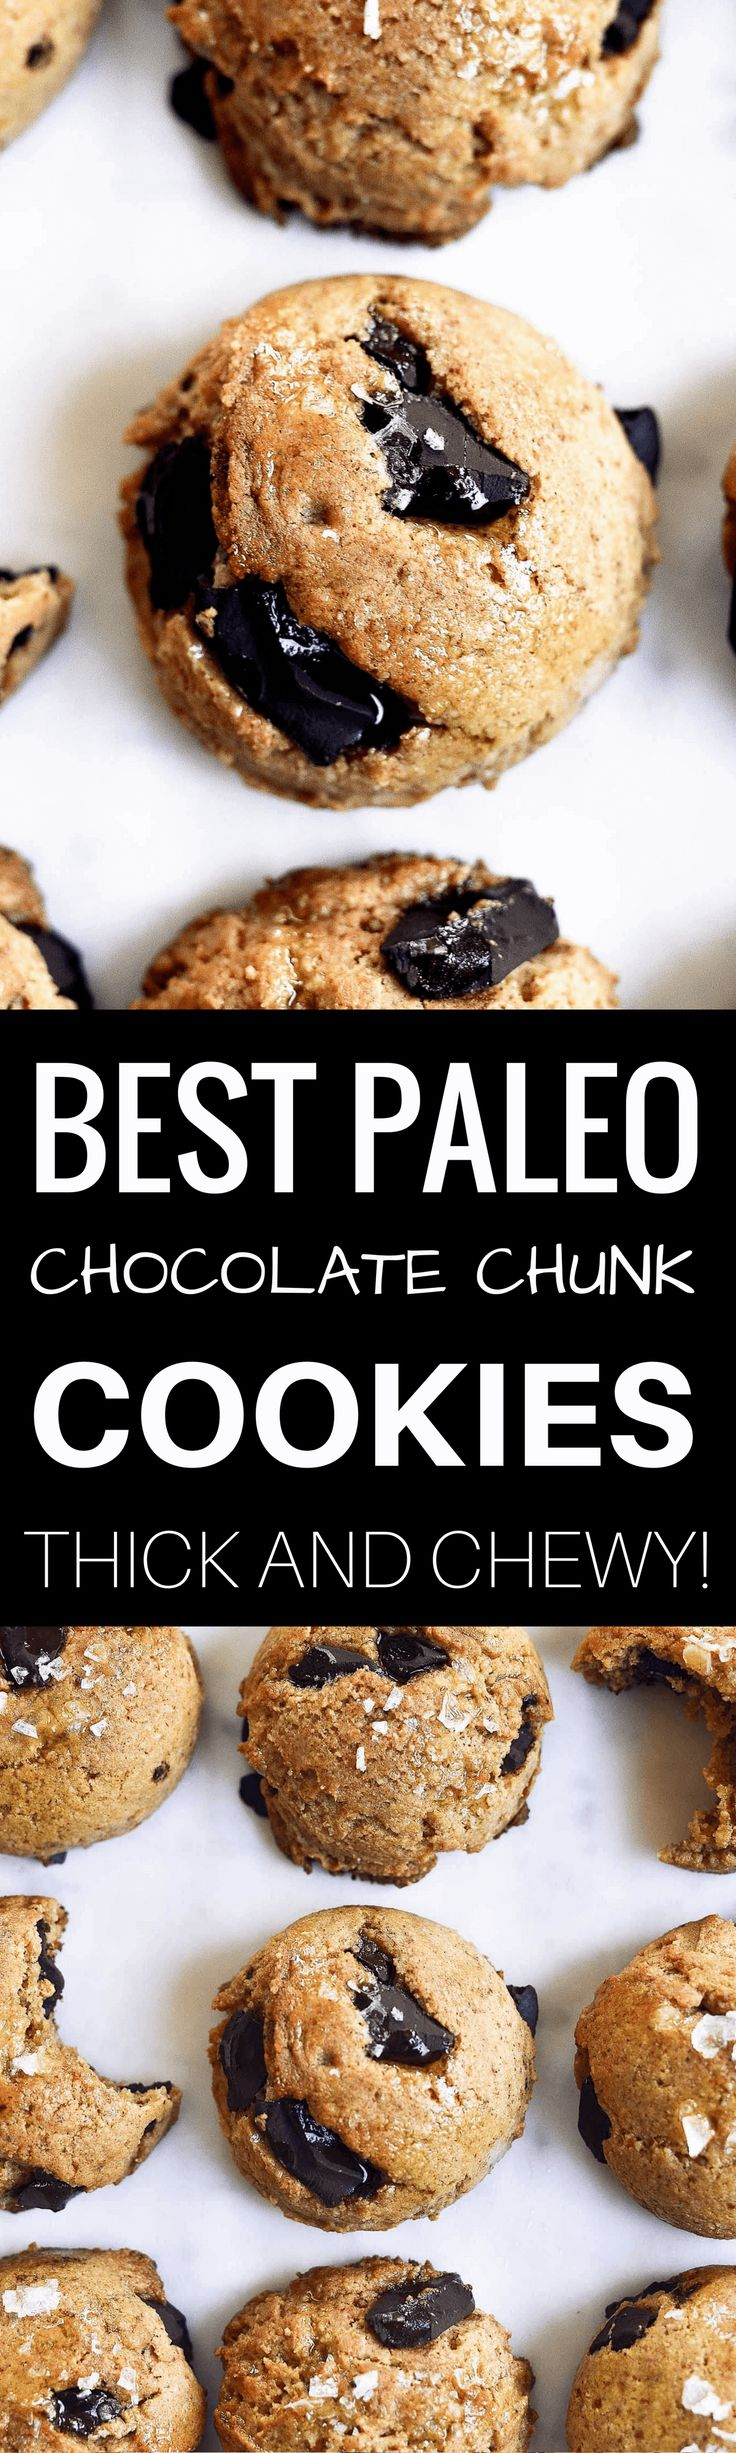 The most delicious paleo and vegan chocolate chunk cookies! Thick, of so soft, chewy, perfect texture. Ready for eating in only 15 minutes.